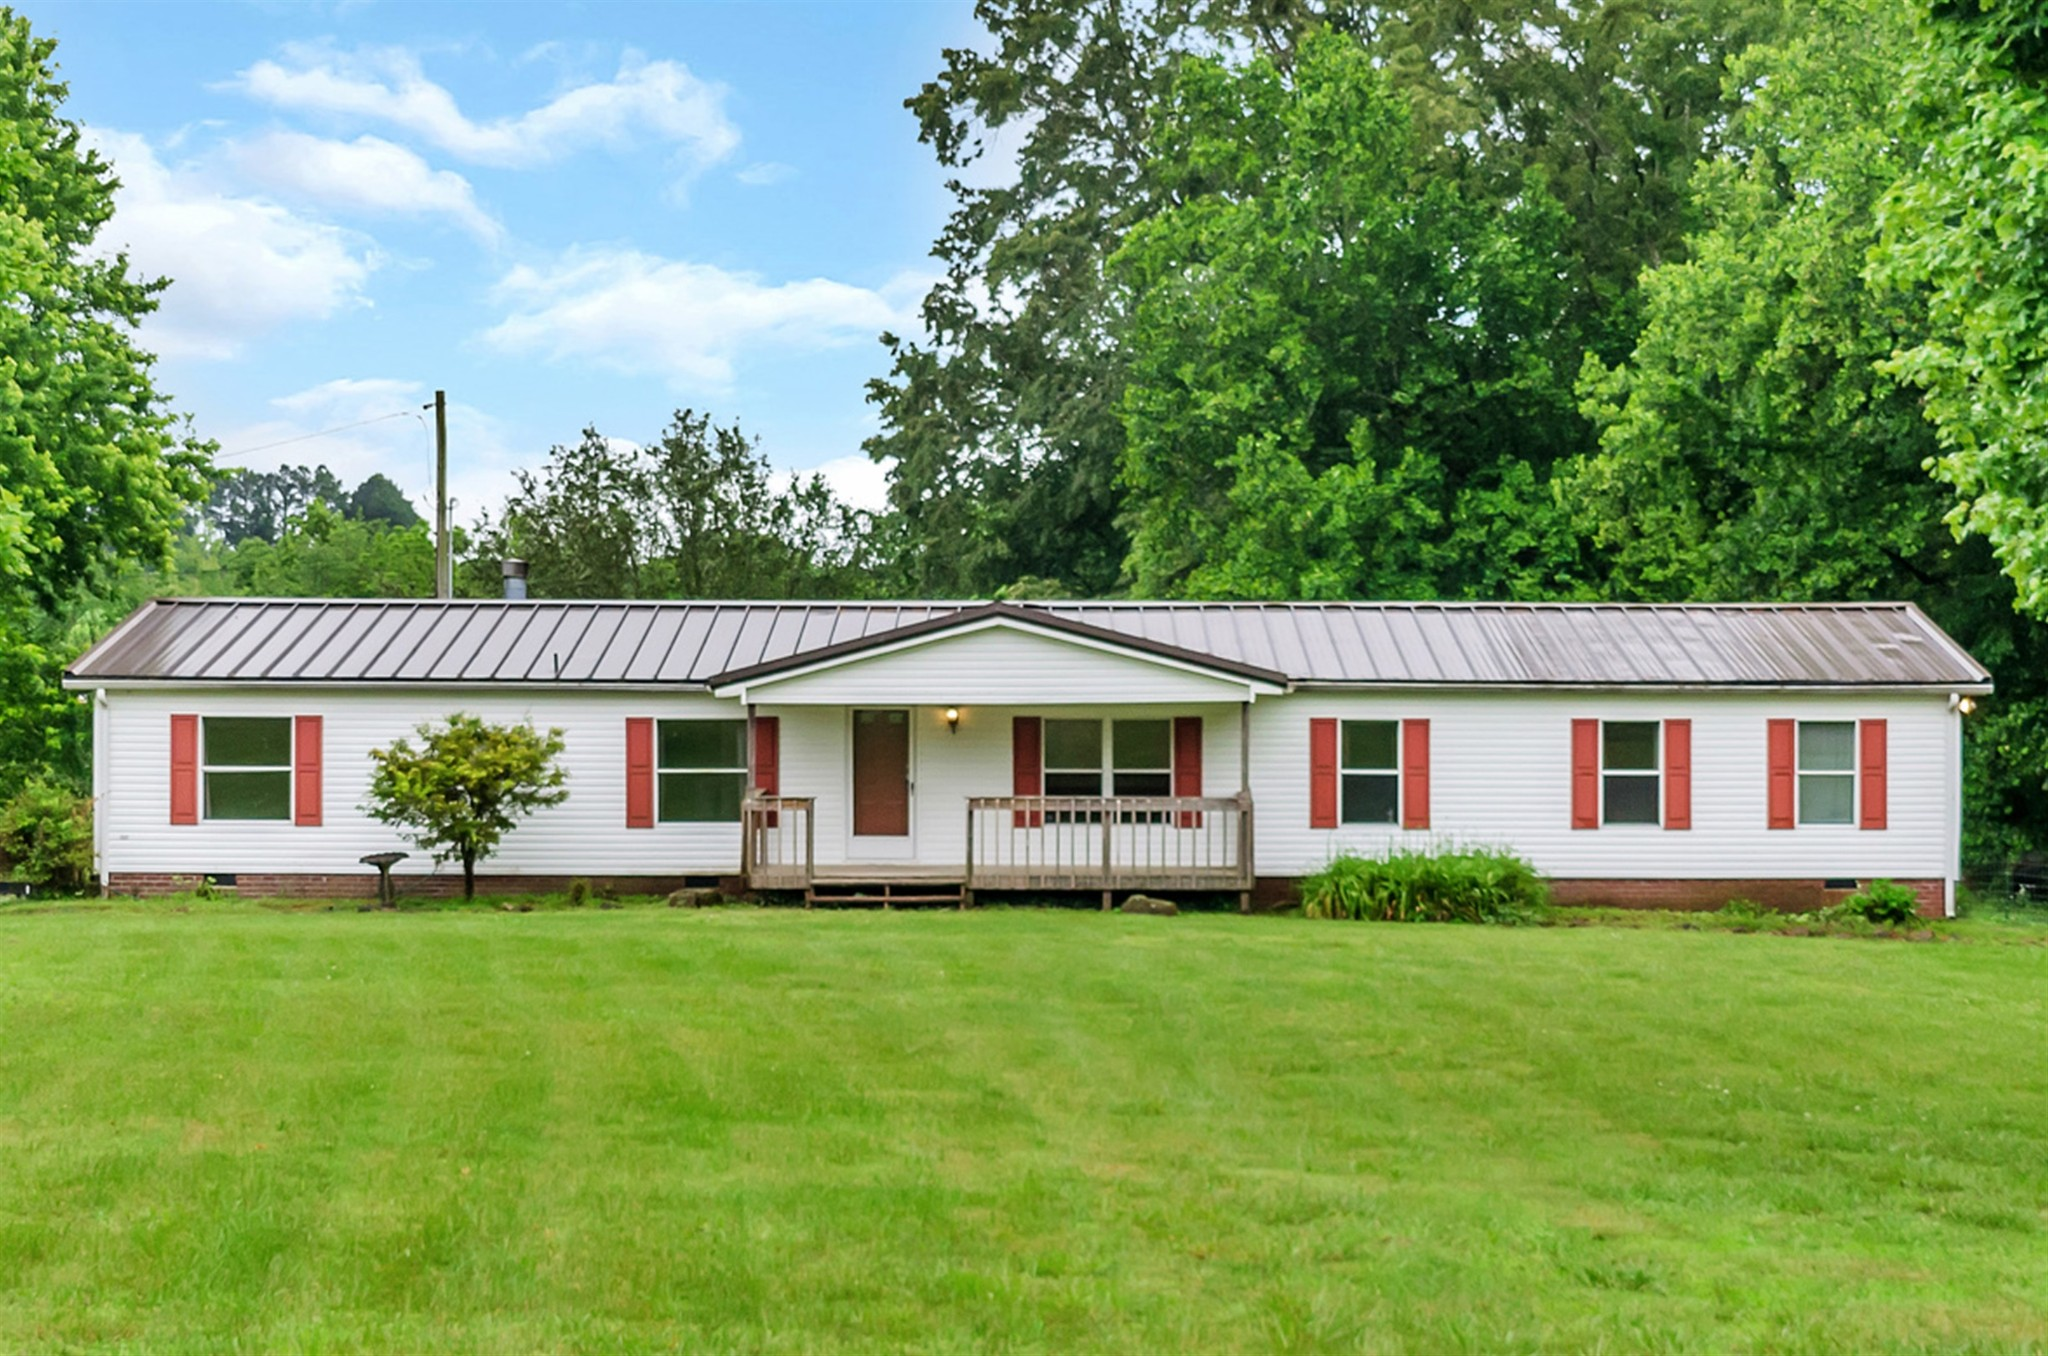 345 Tom Link Rd, Cottontown, TN 37048 - Cottontown, TN real estate listing